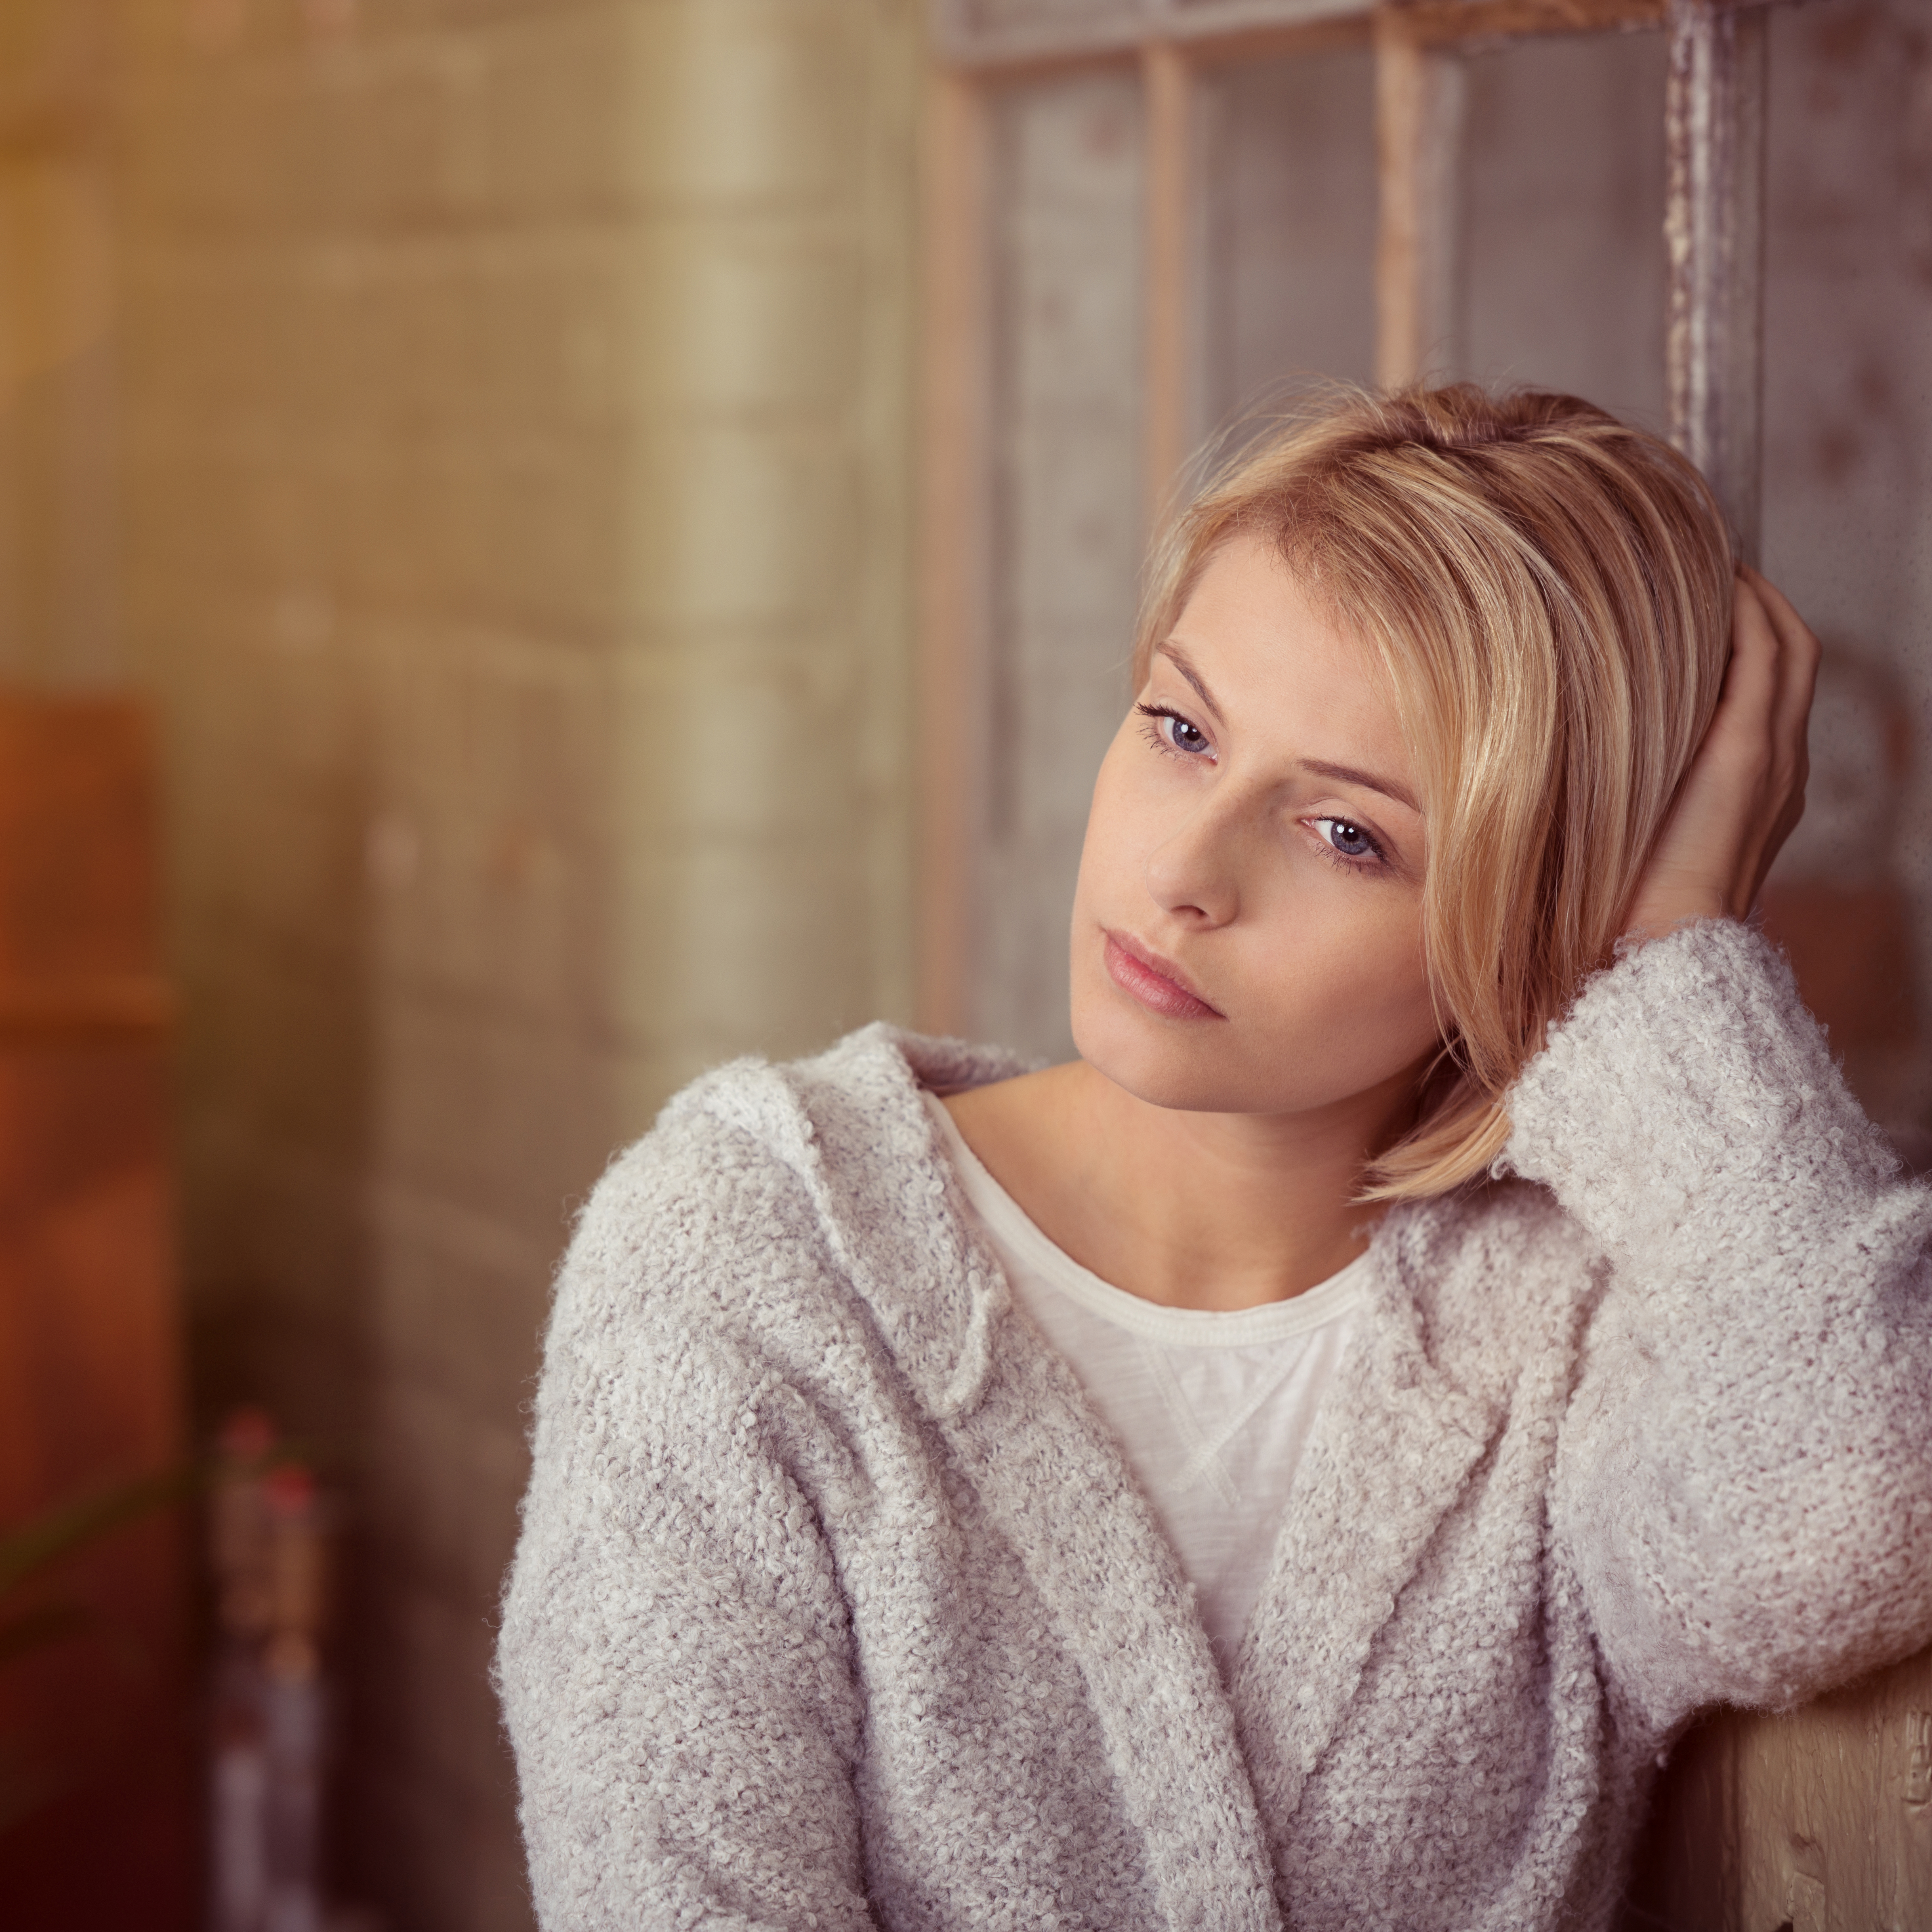 a young woman leaning against a brick wall and window sill, looking serious or sad